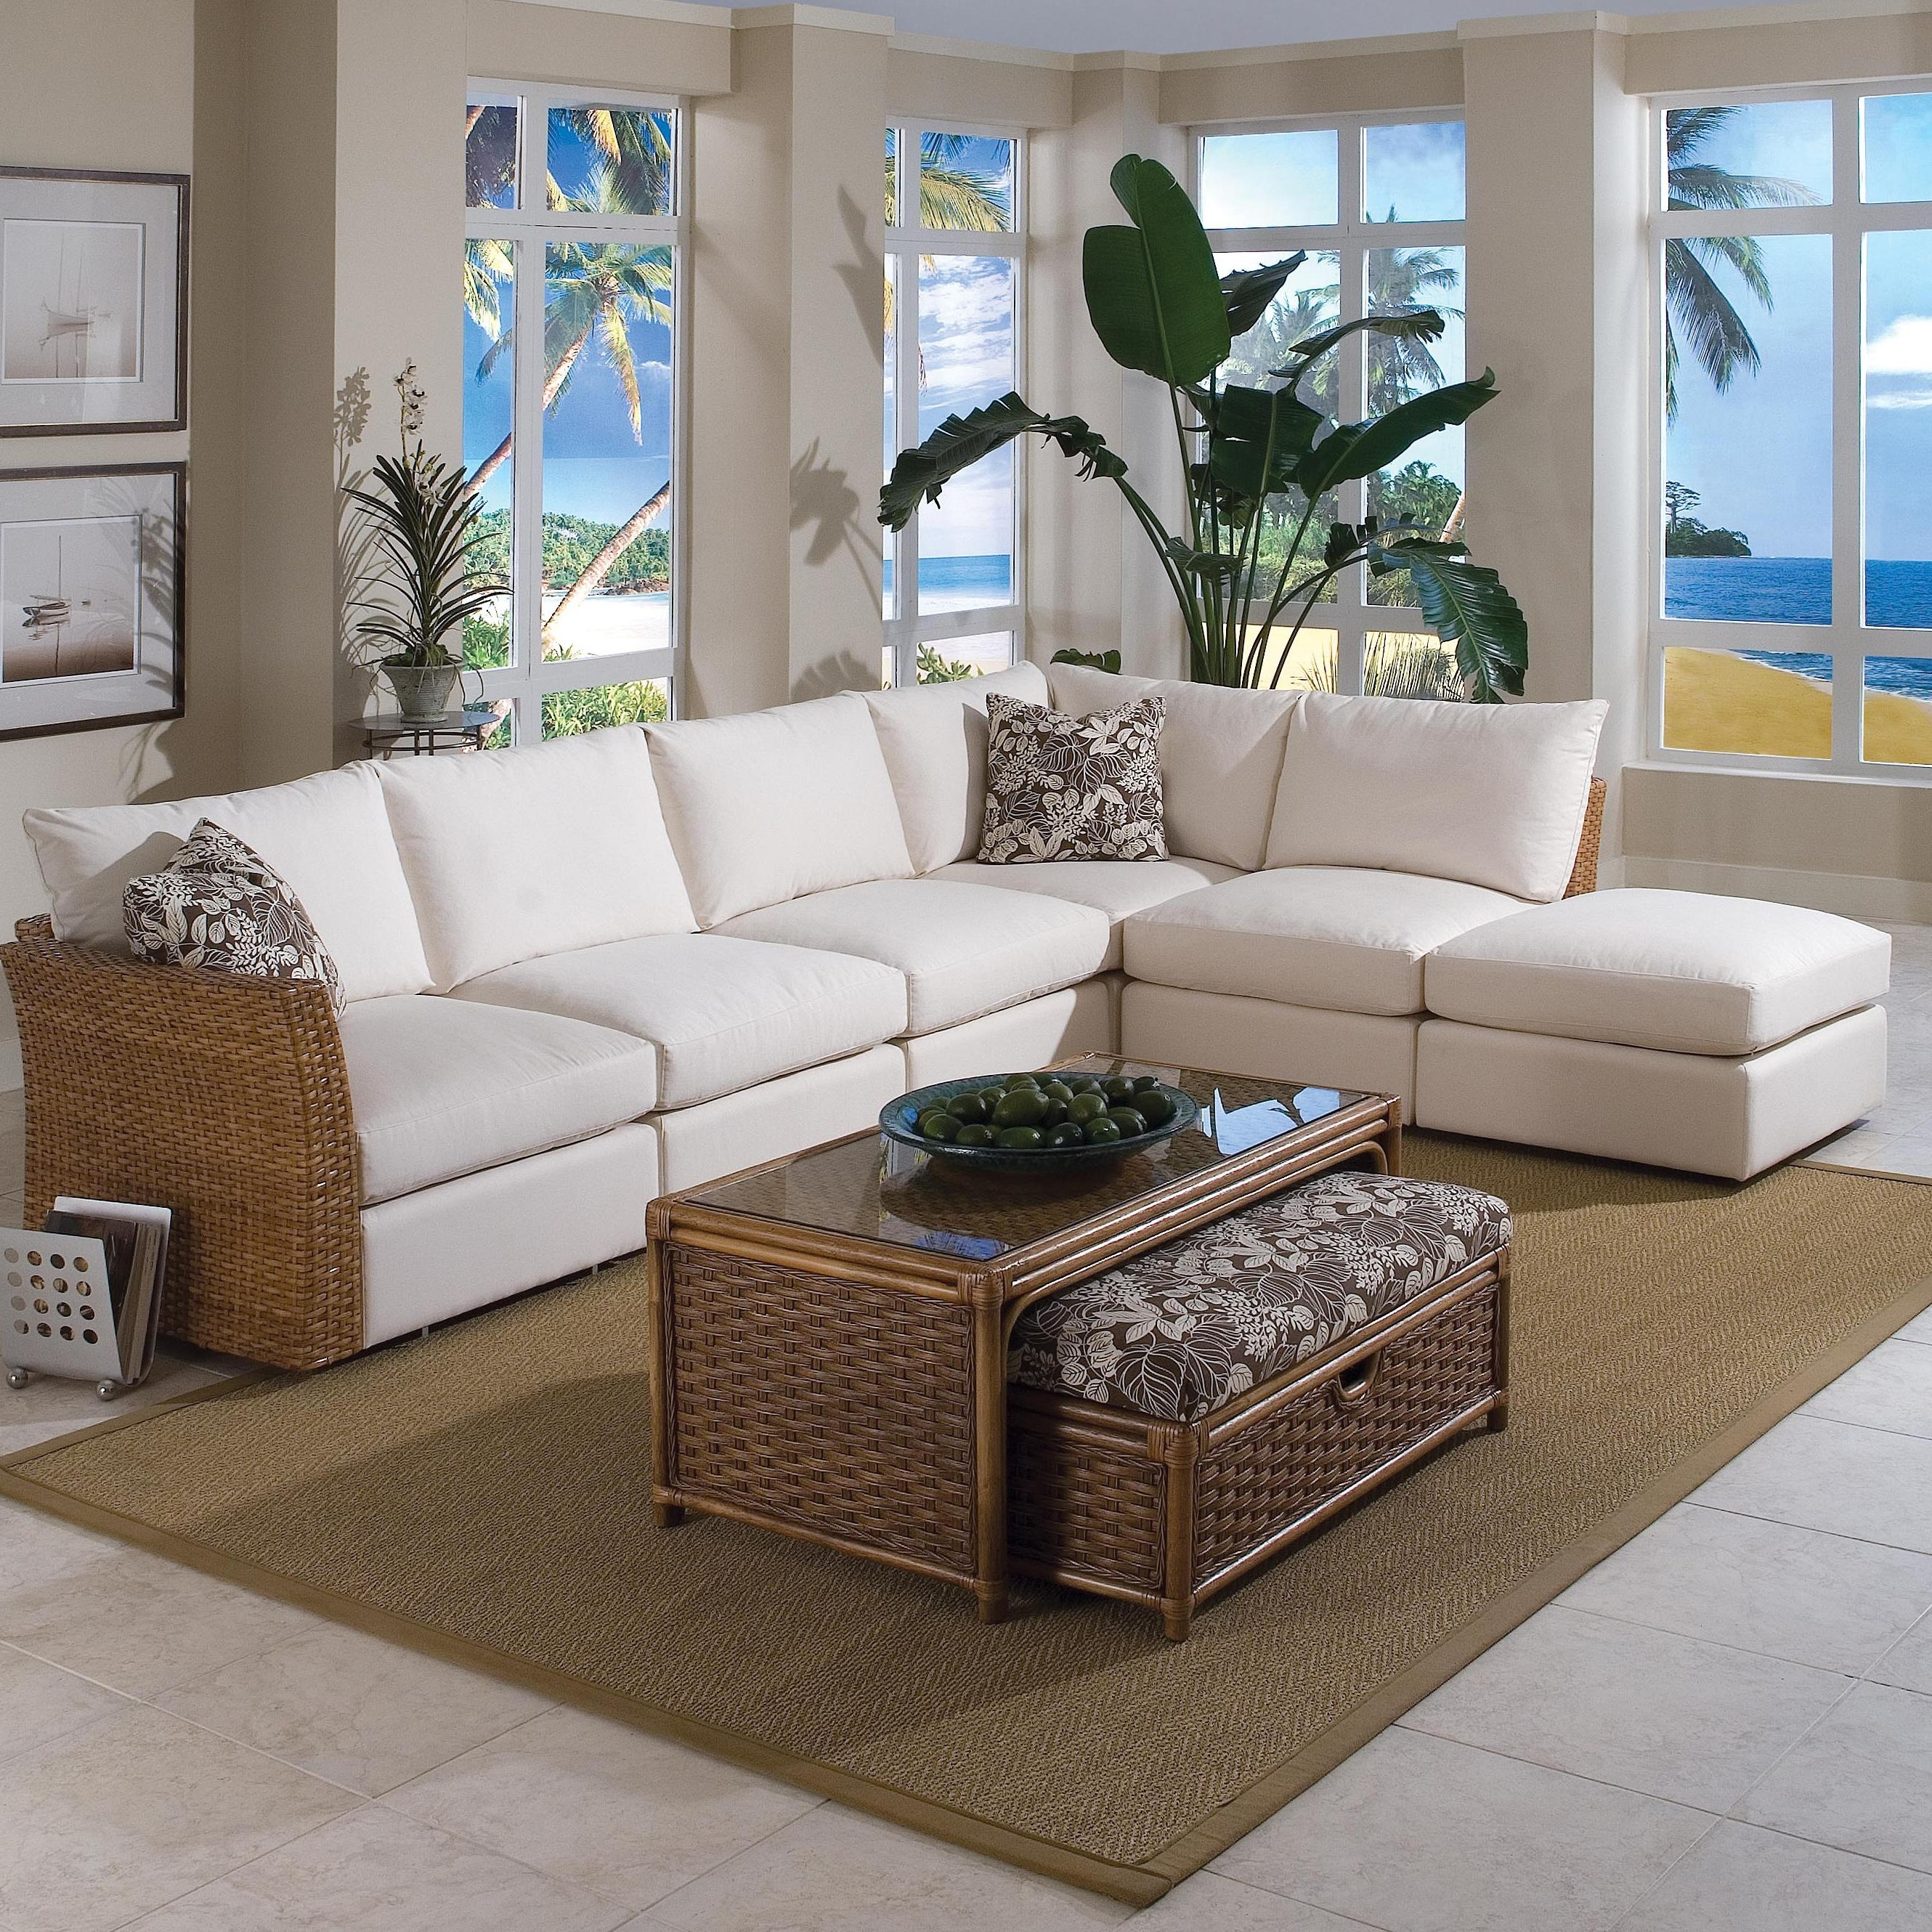 2019 Braxton Culler Grand Water Point Tropical Sectional Sofa With Two For Wilmington Nc Sectional Sofas (View 13 of 20)